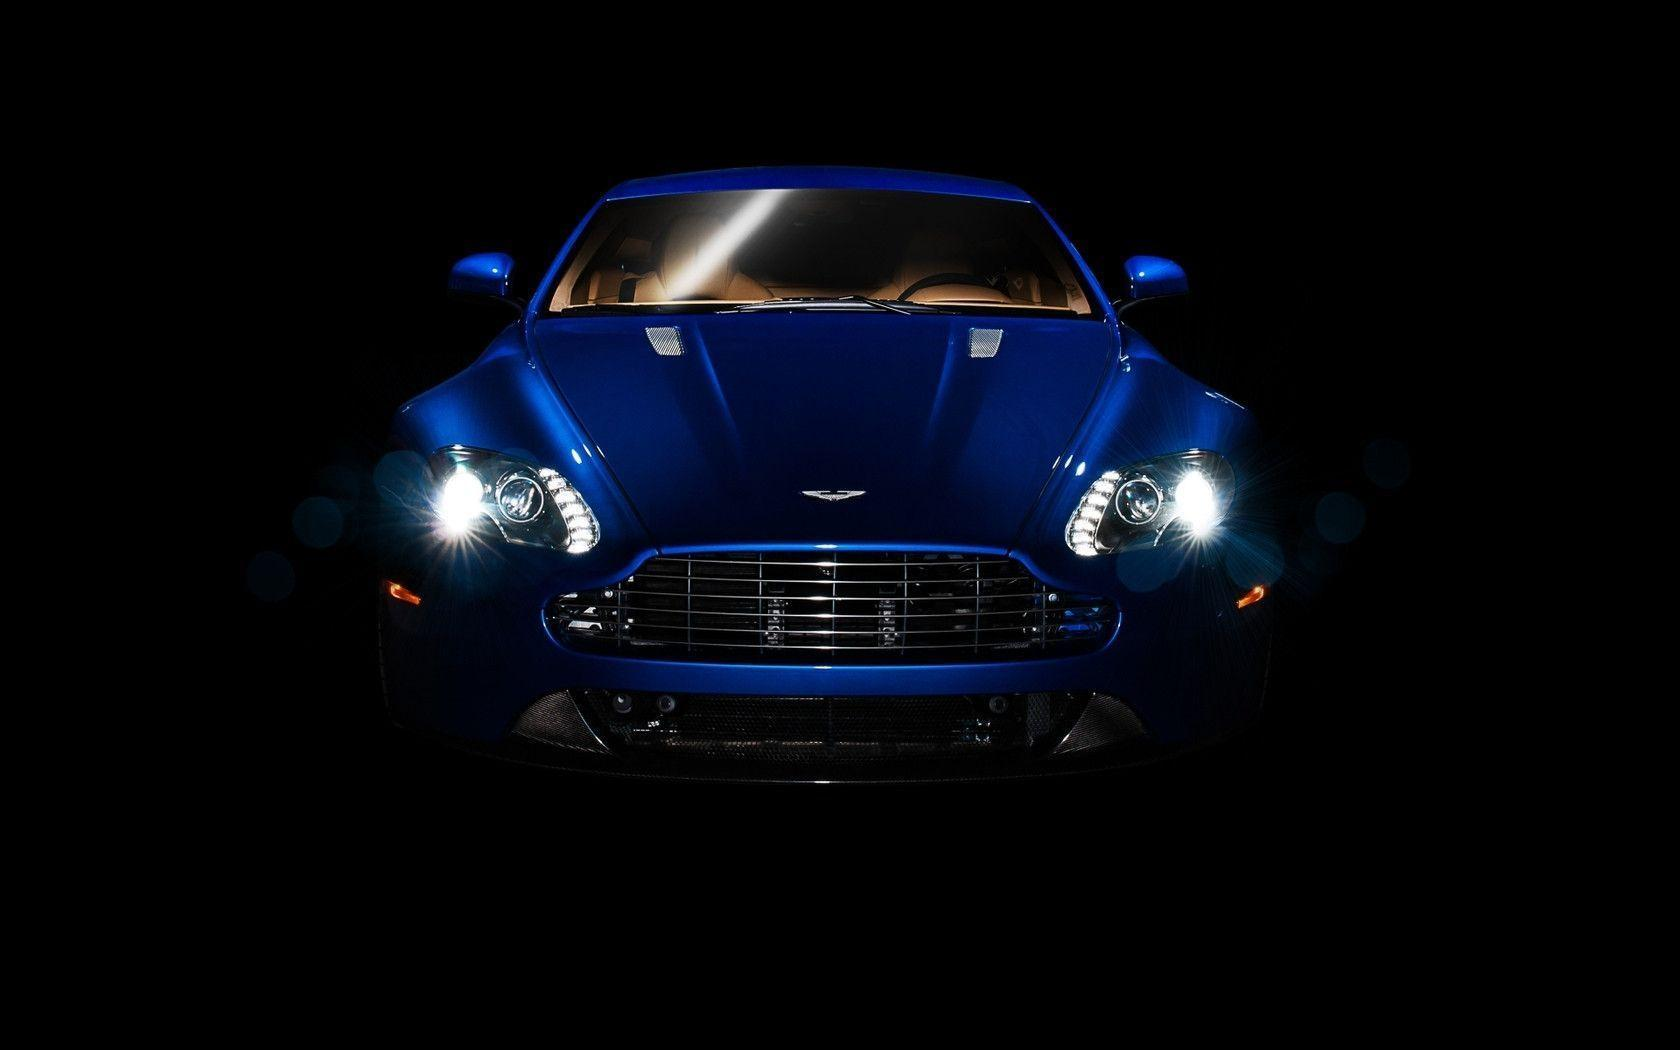 The temperature is rising across the country, and. Blue Car Wallpapers Wallpaper Cave